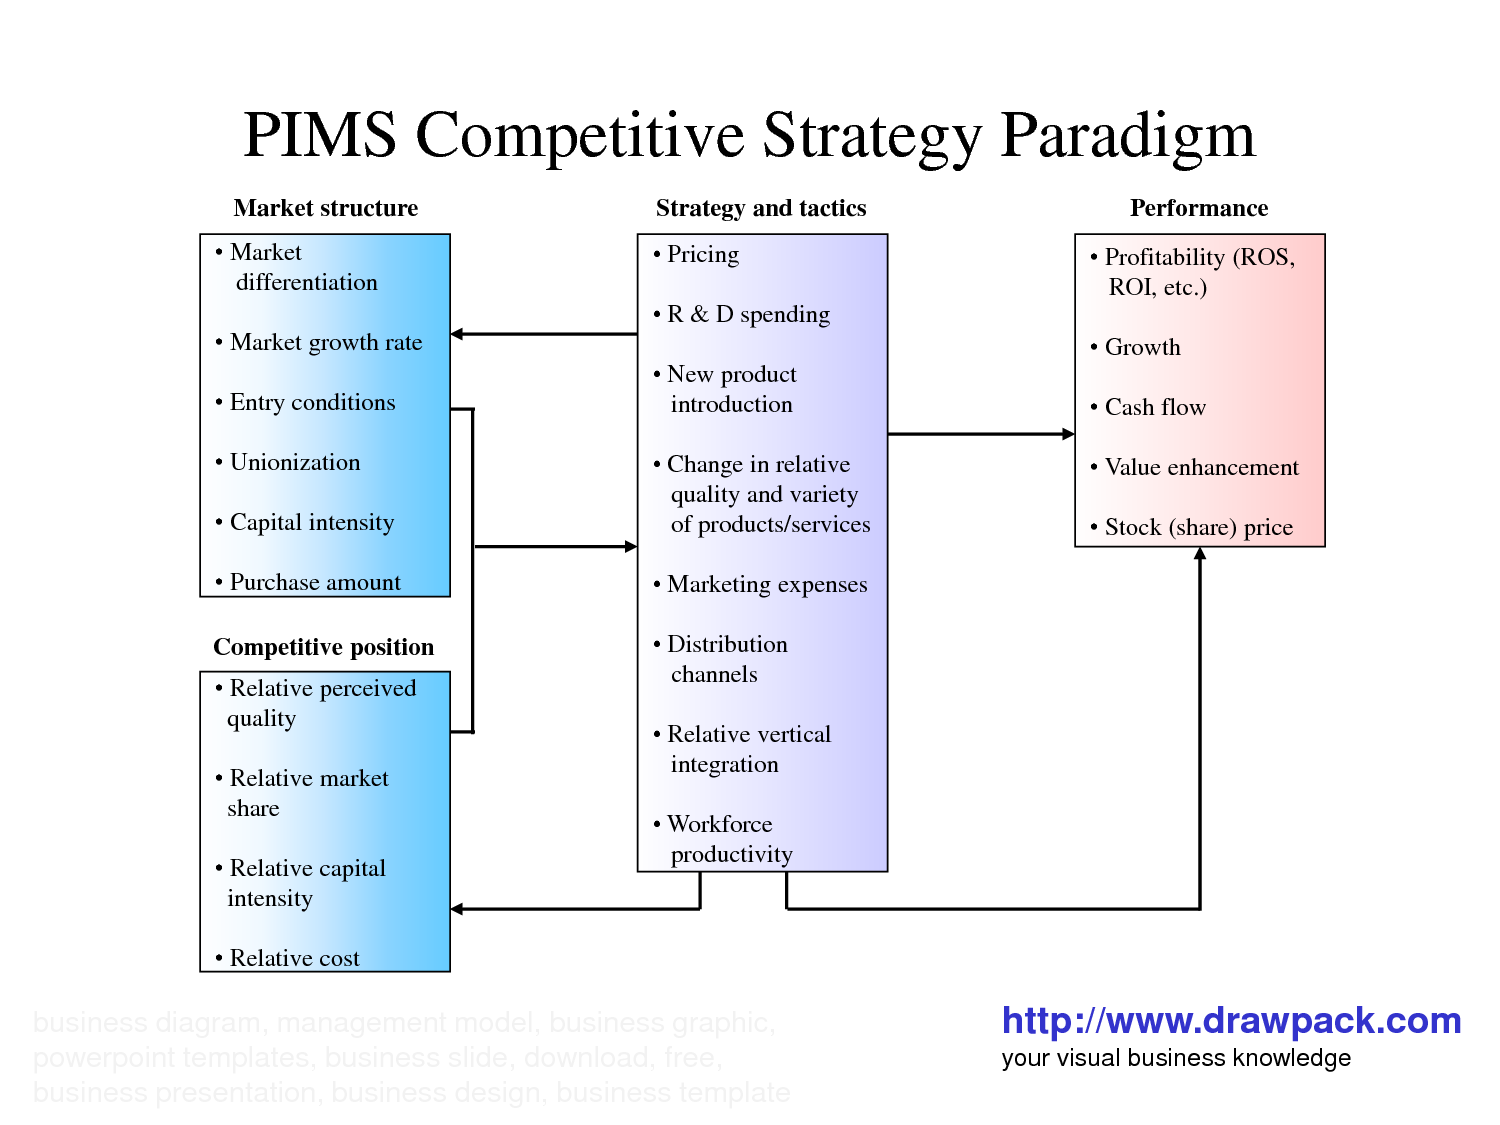 Pims Model  Competitive Market Paradigm  Business  Marketing